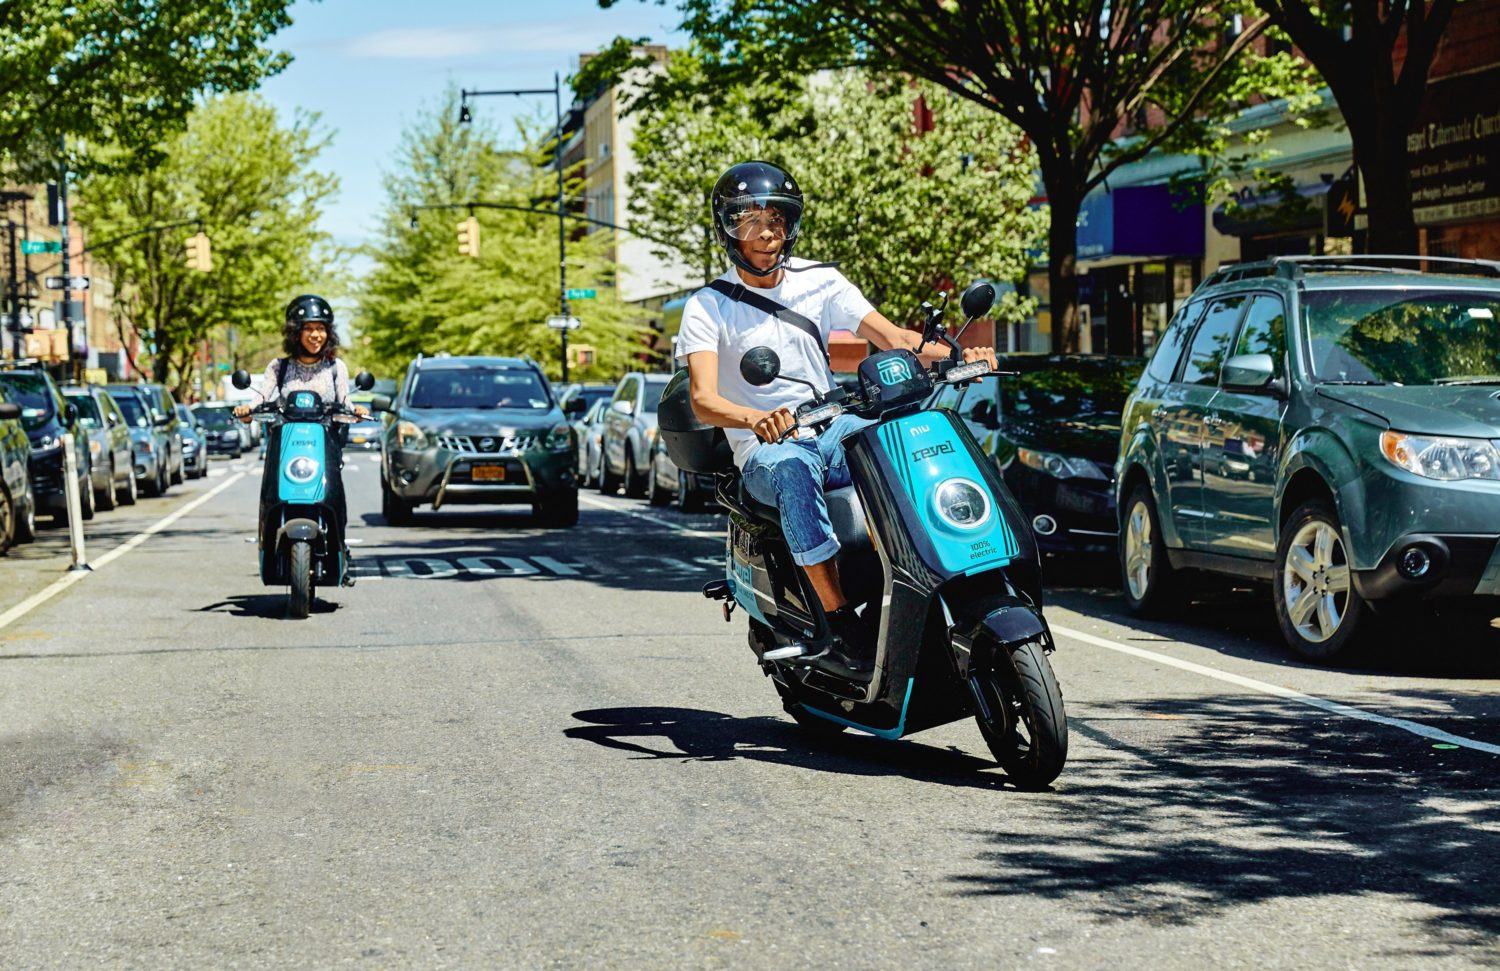 Rentable Mopeds Are Rolling Into The District This Weekend